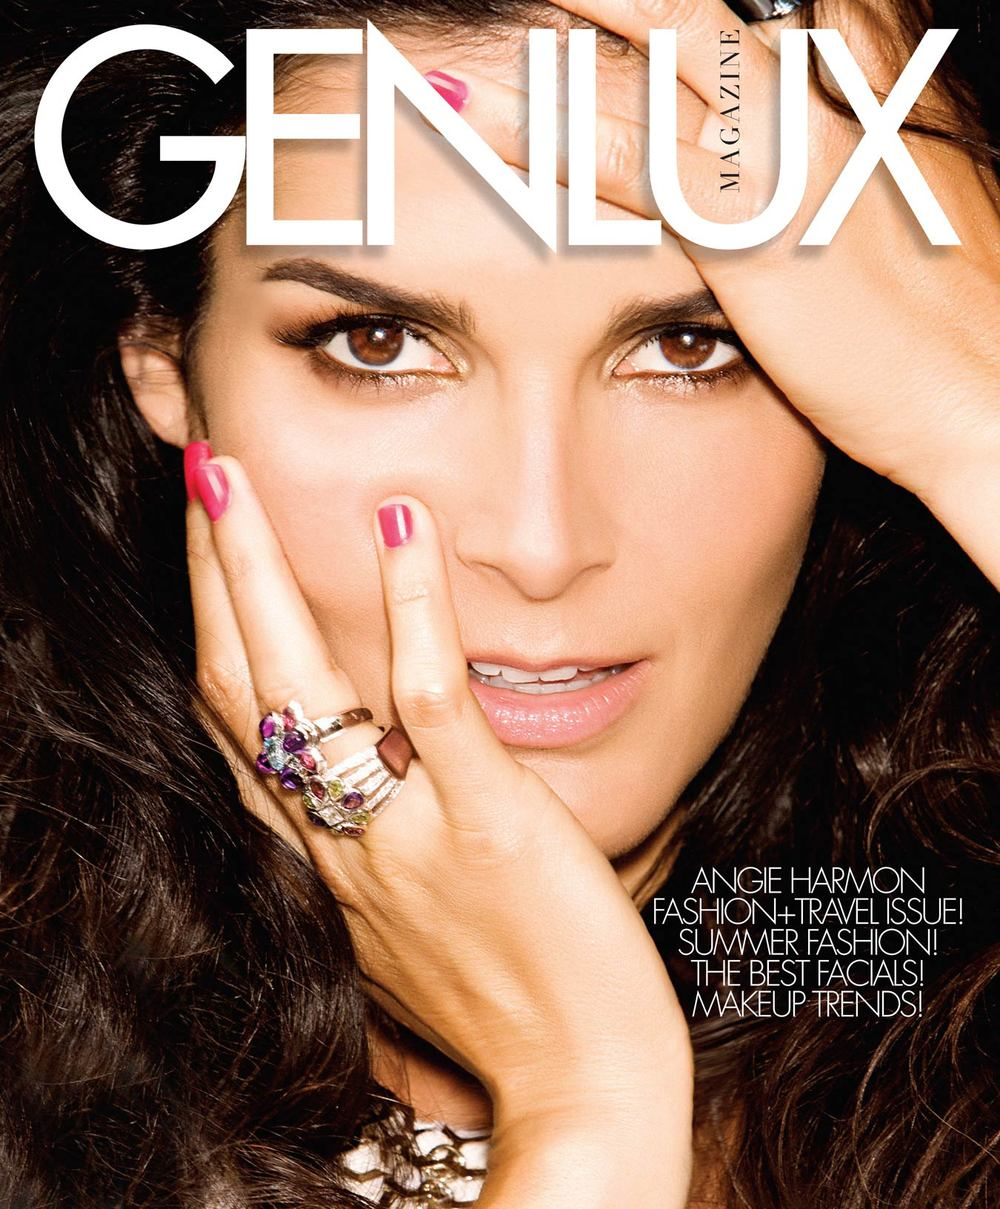 click on cover to view magazine